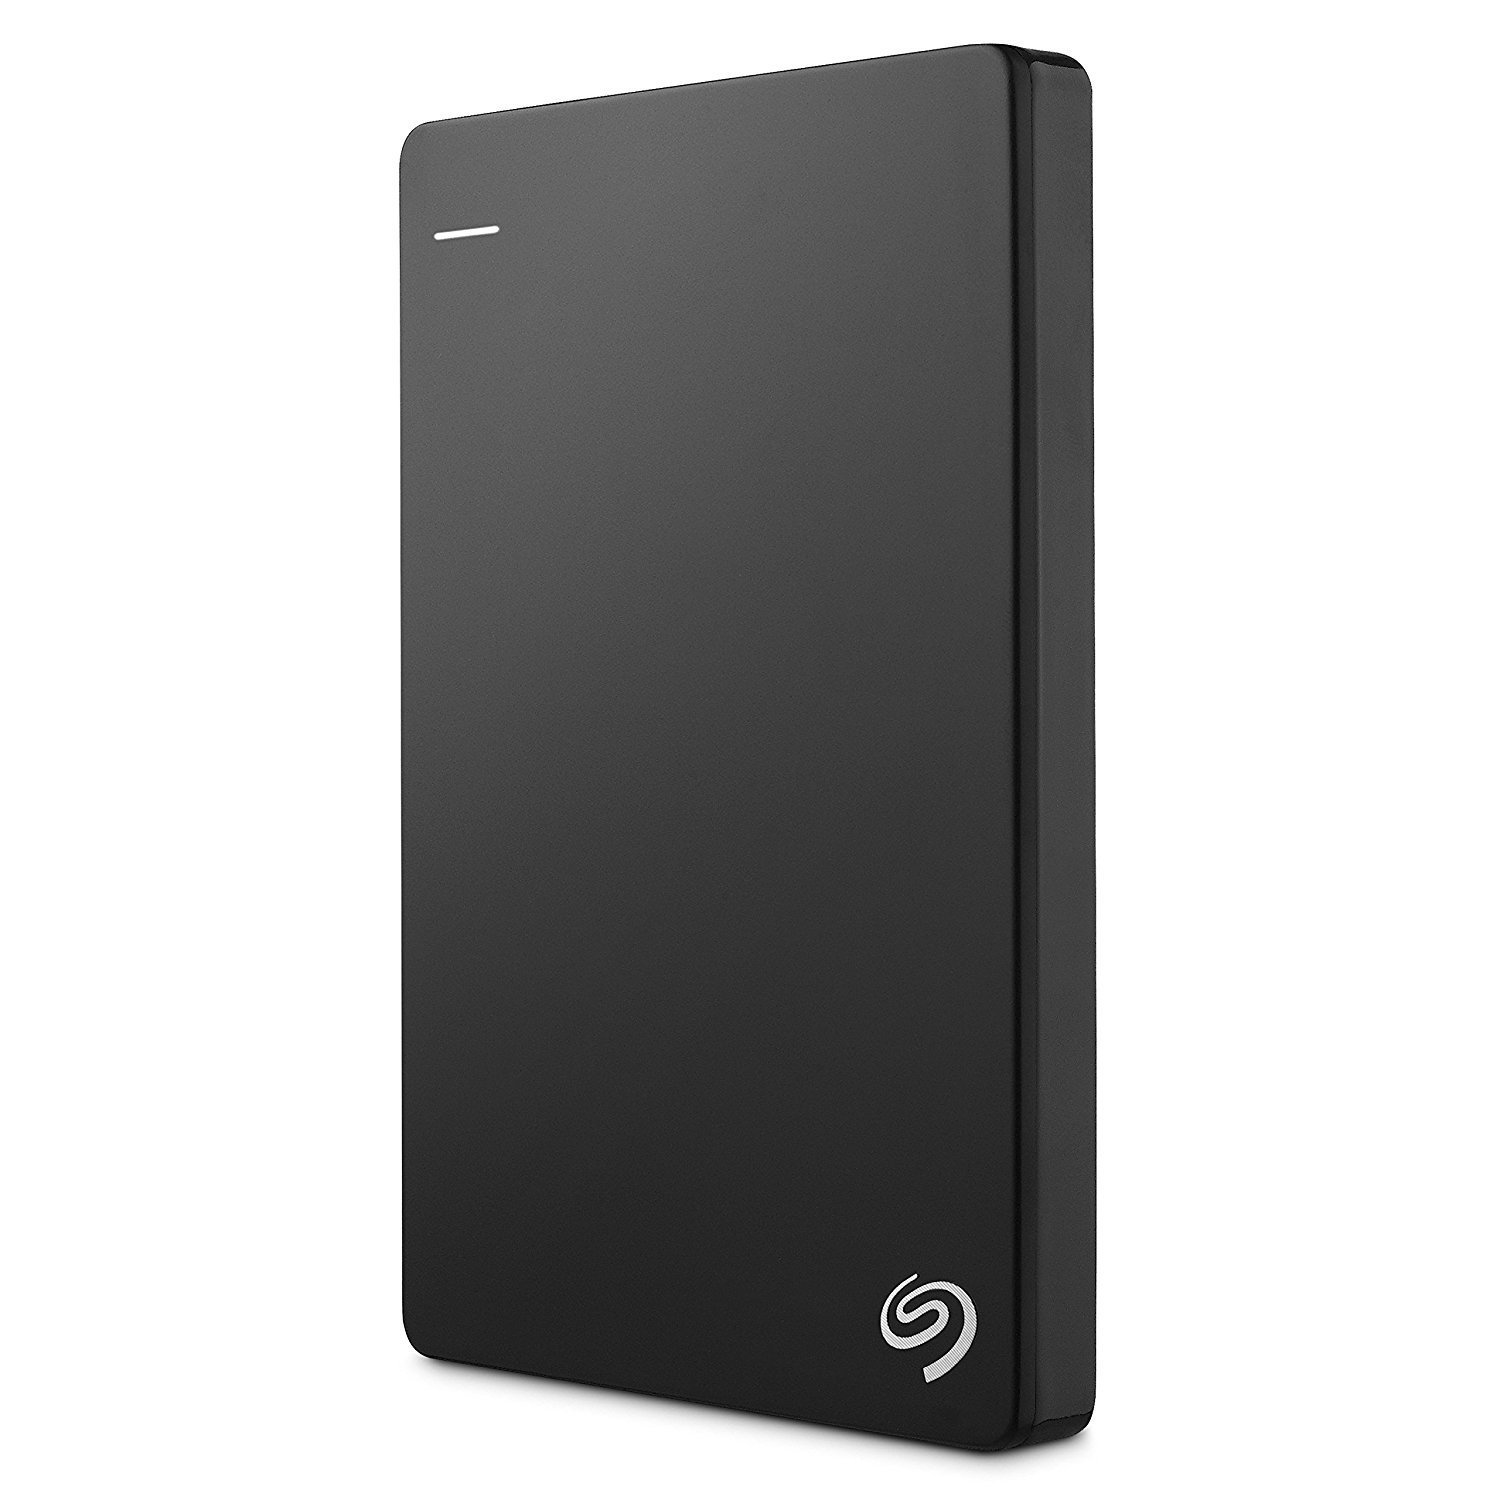 Seagate Backup Plus 4TB Portable External Hard Drive USB 3.0 Black (STDR4000100)